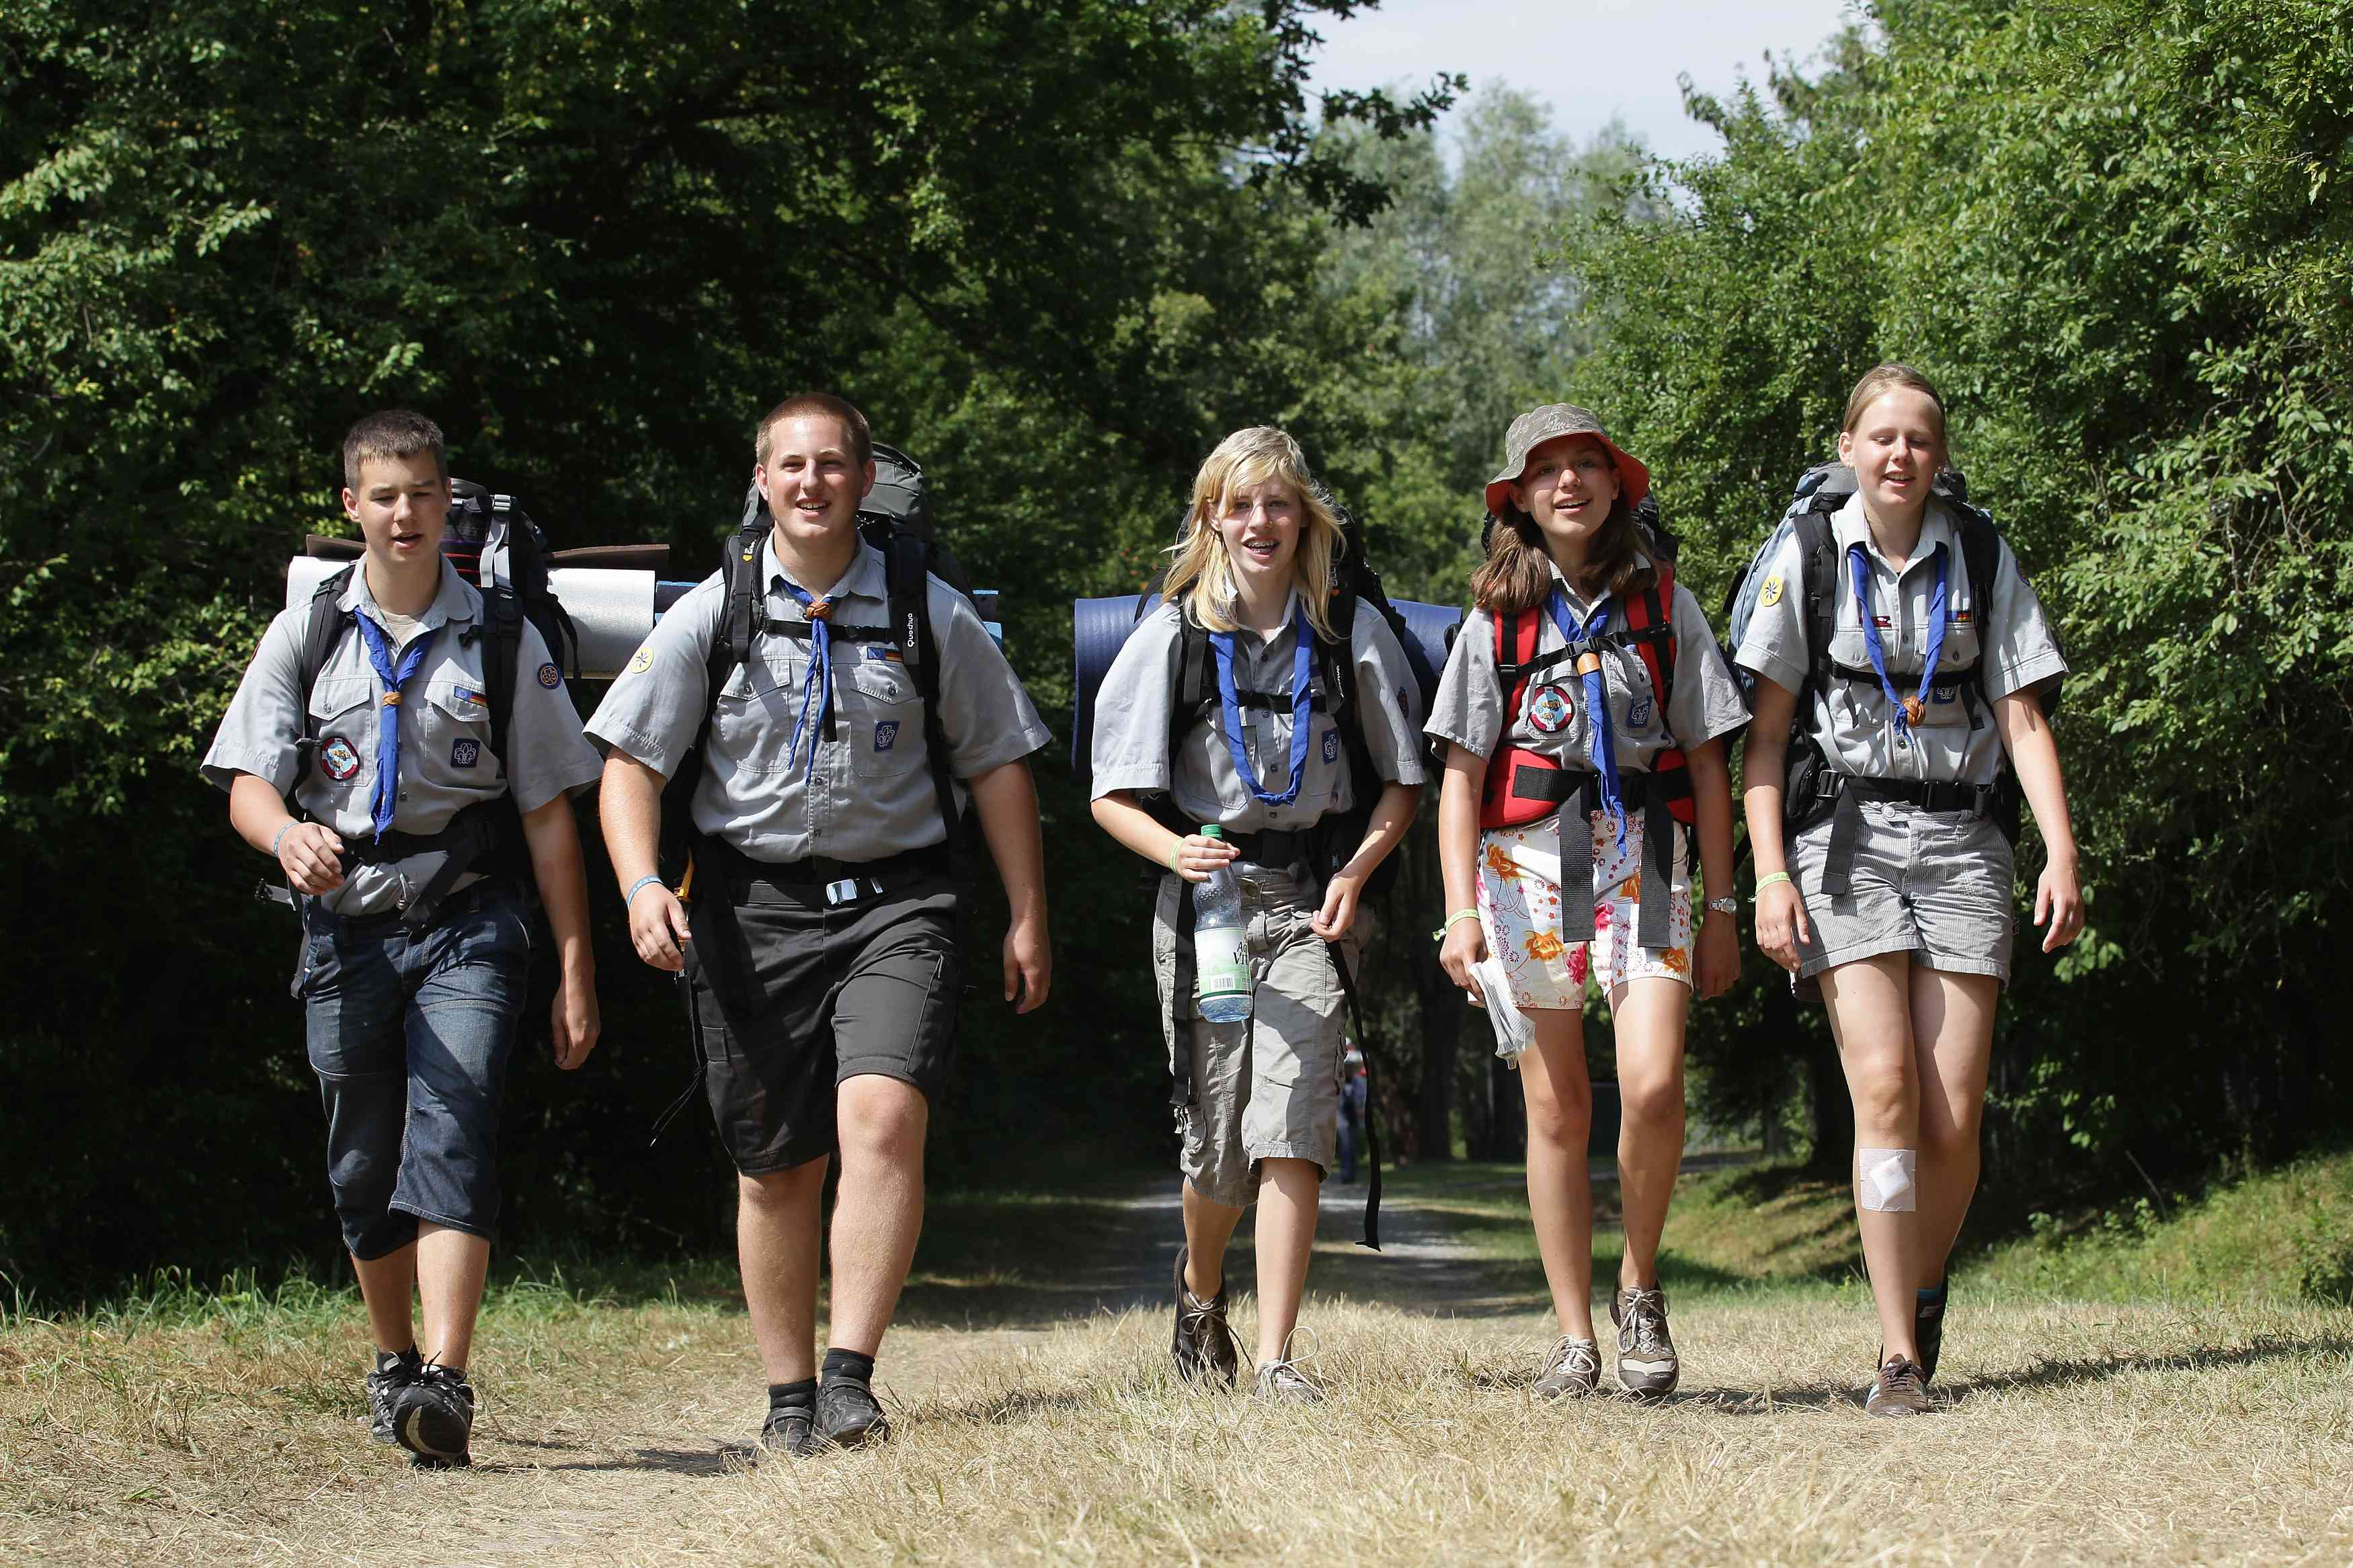 Top 5 Scouting Organizations for Children